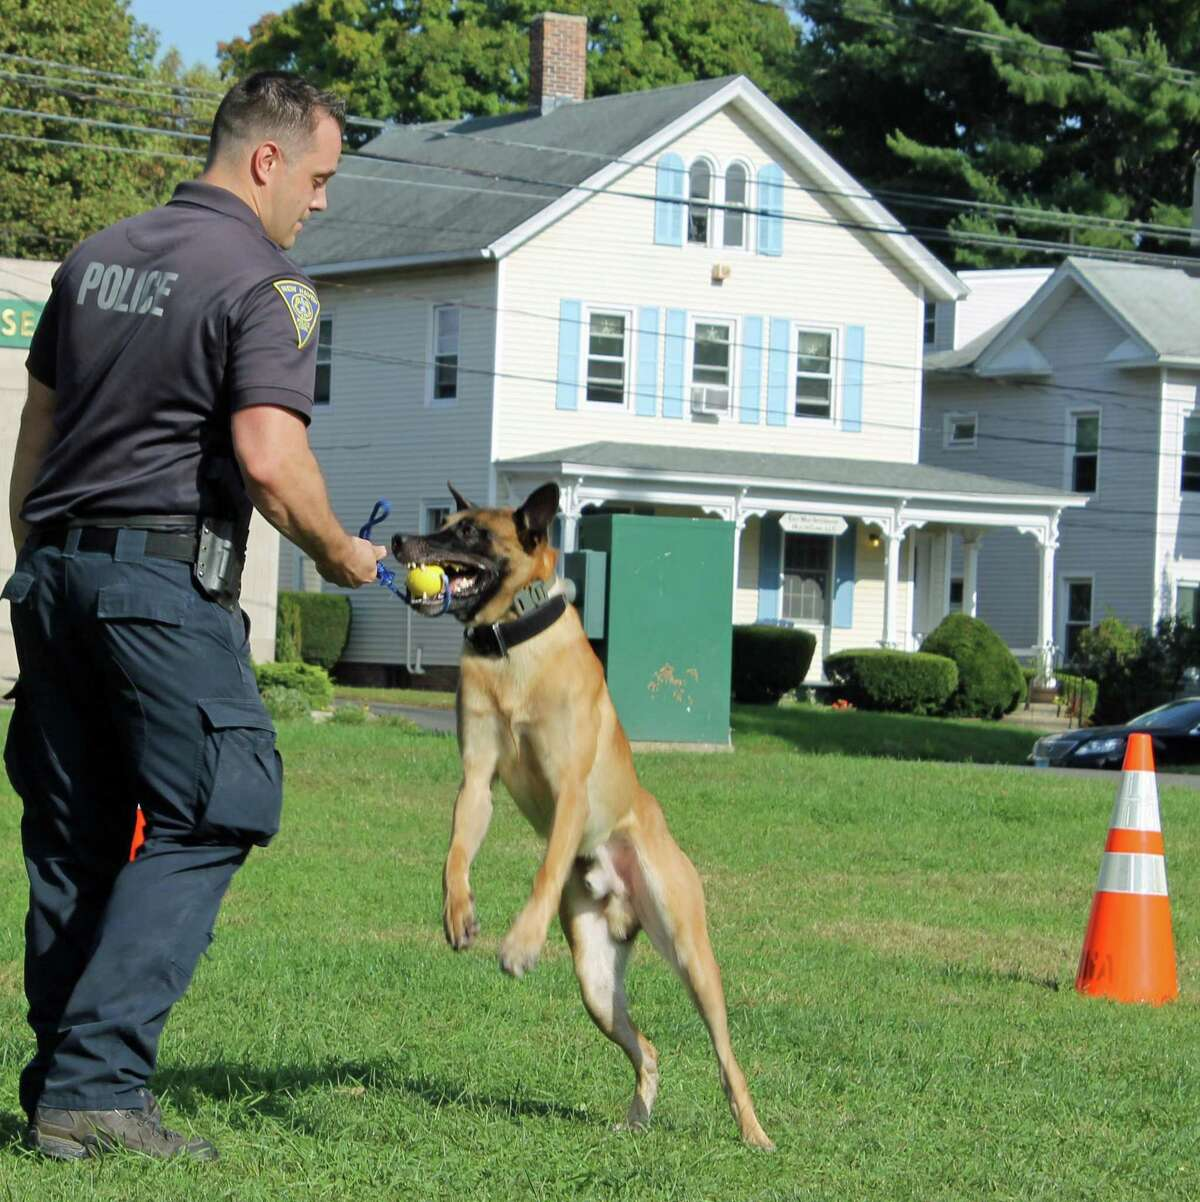 At left, There will be jaw-dropping search-and-rescue dog demos at Animal Awareness Day on the Branford Green Oct. 3.